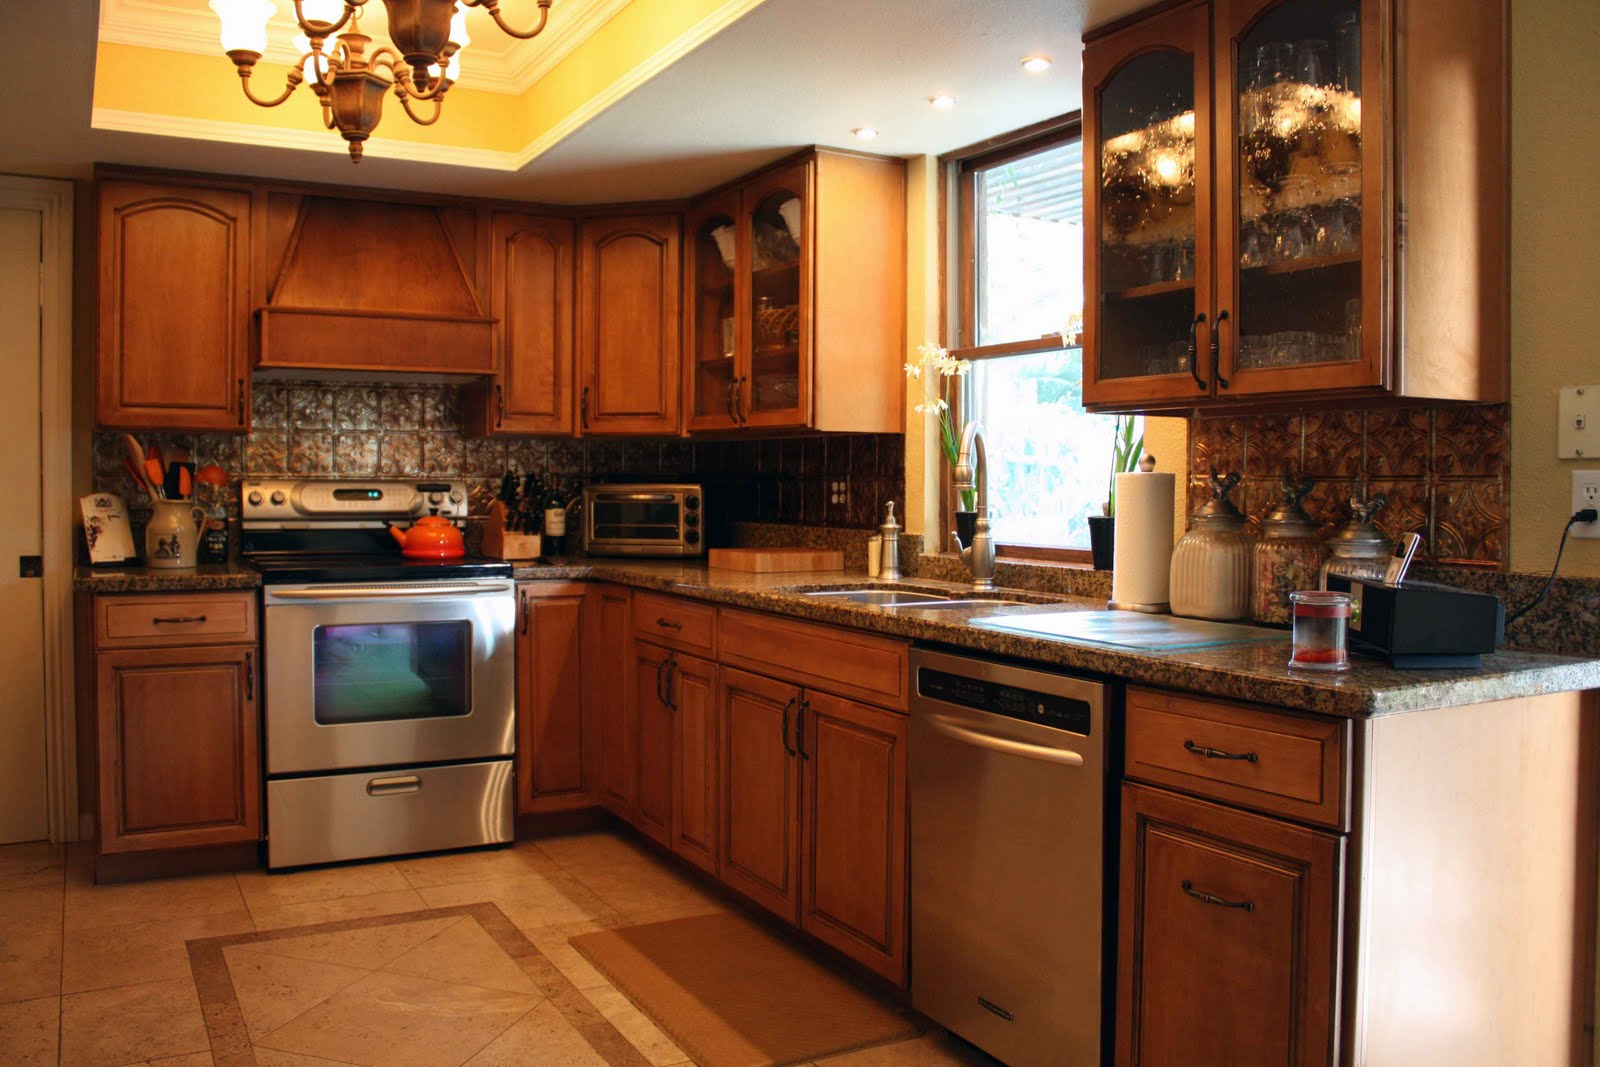 Clutter Free Kitchen For More Space